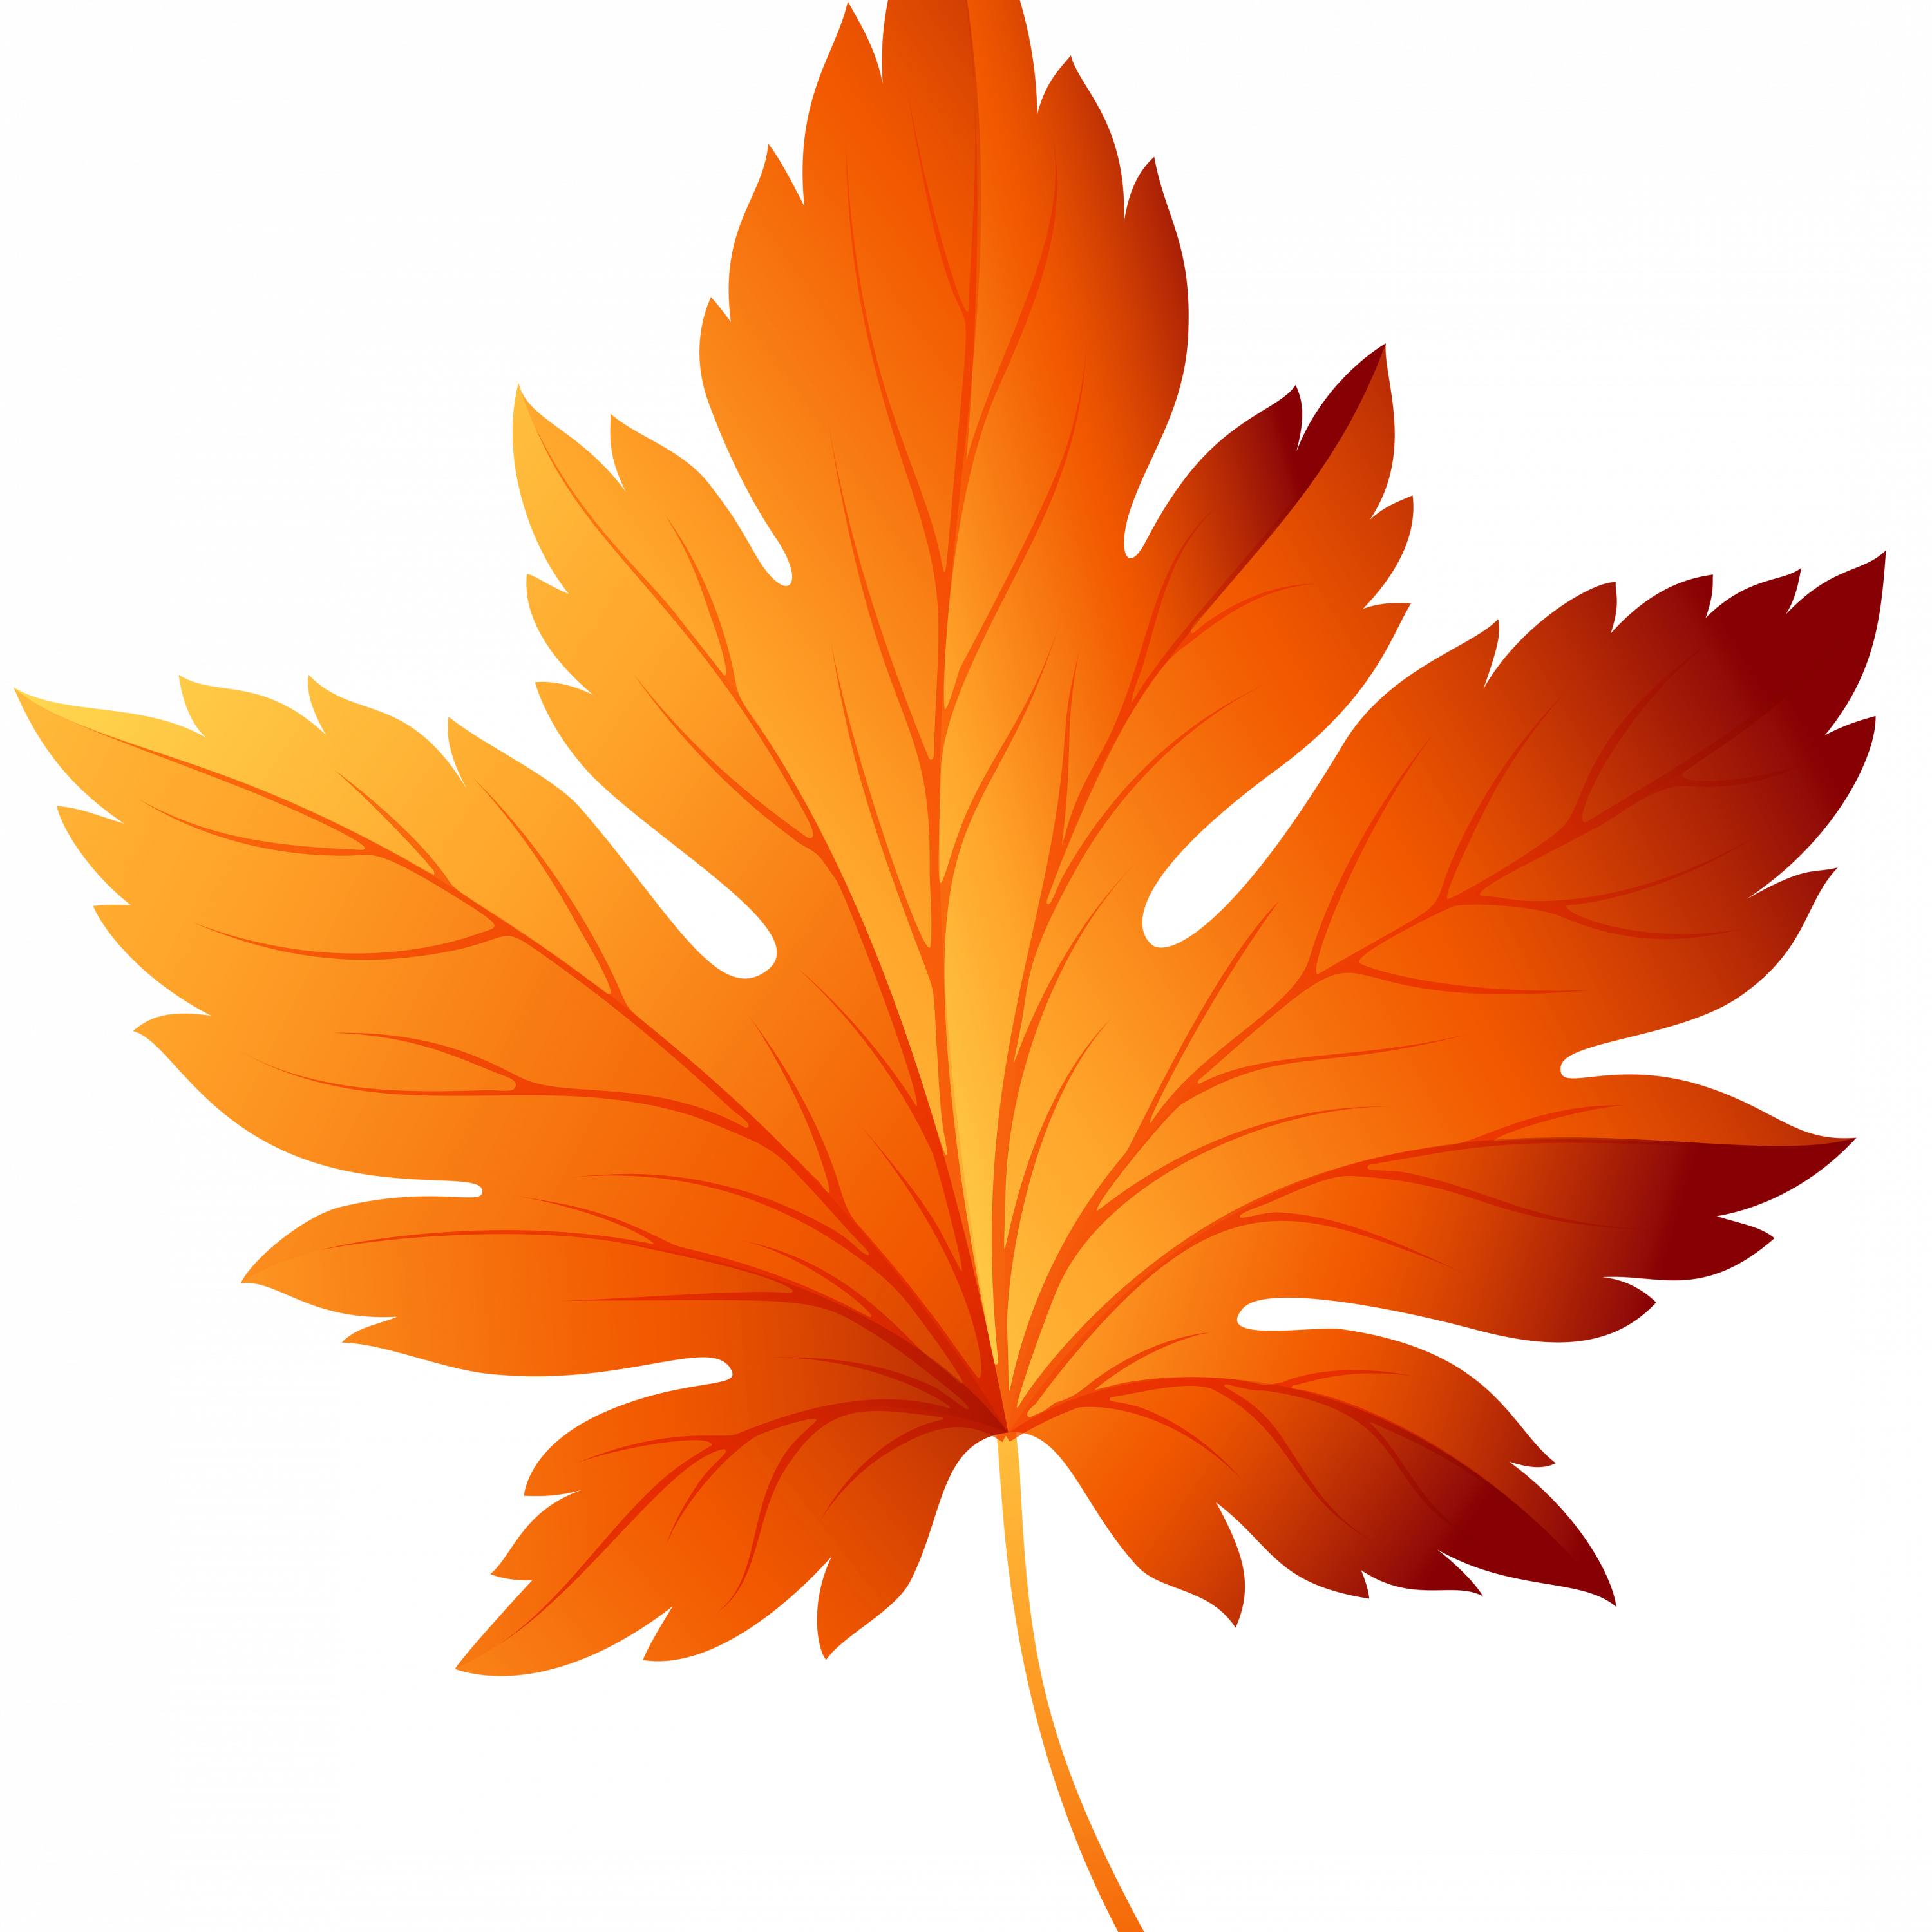 Fall Leaves Background Clipart